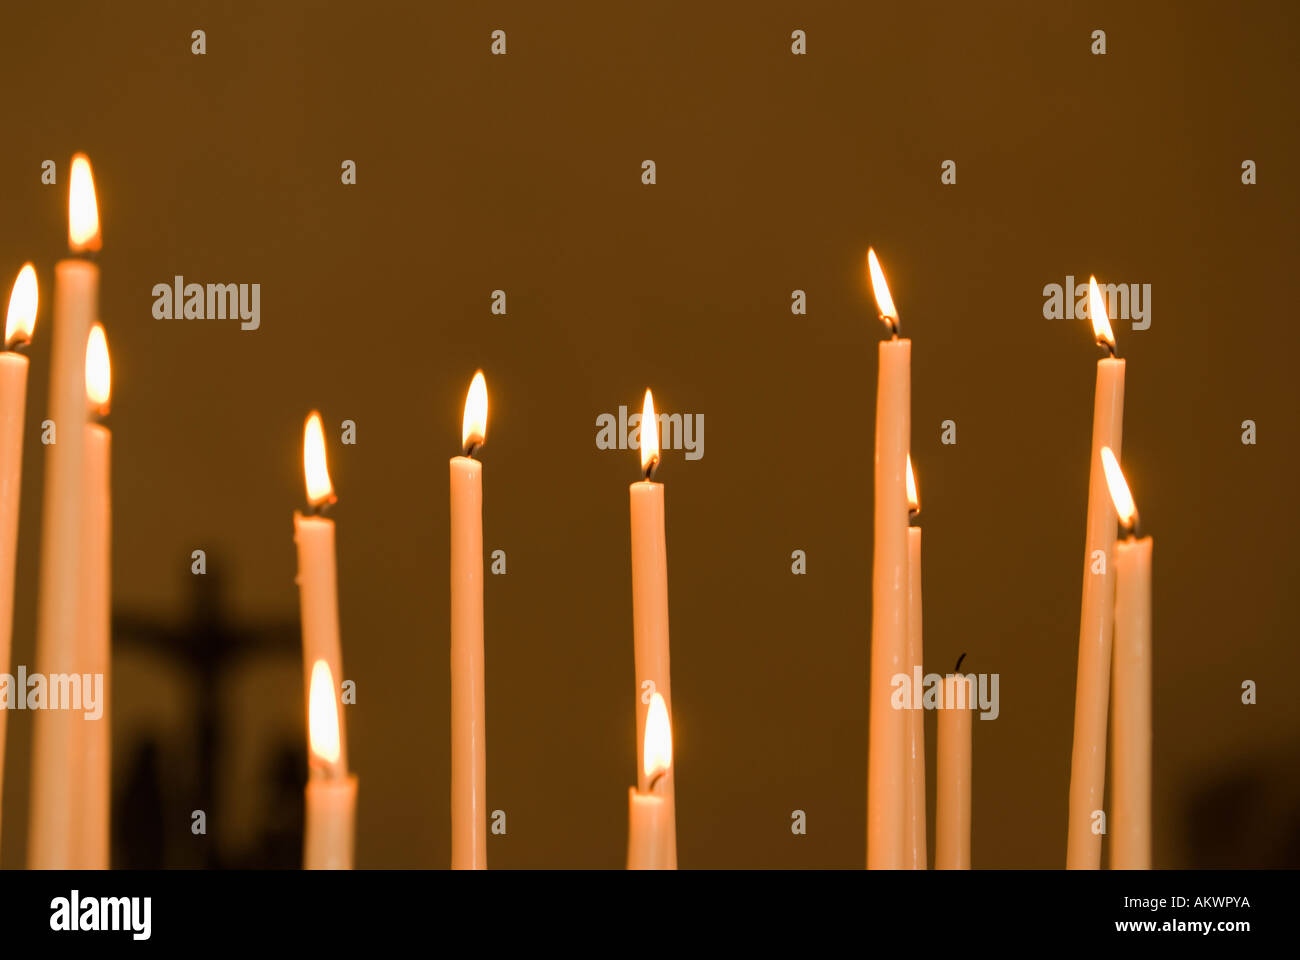 Still life, Candles - Stock Image